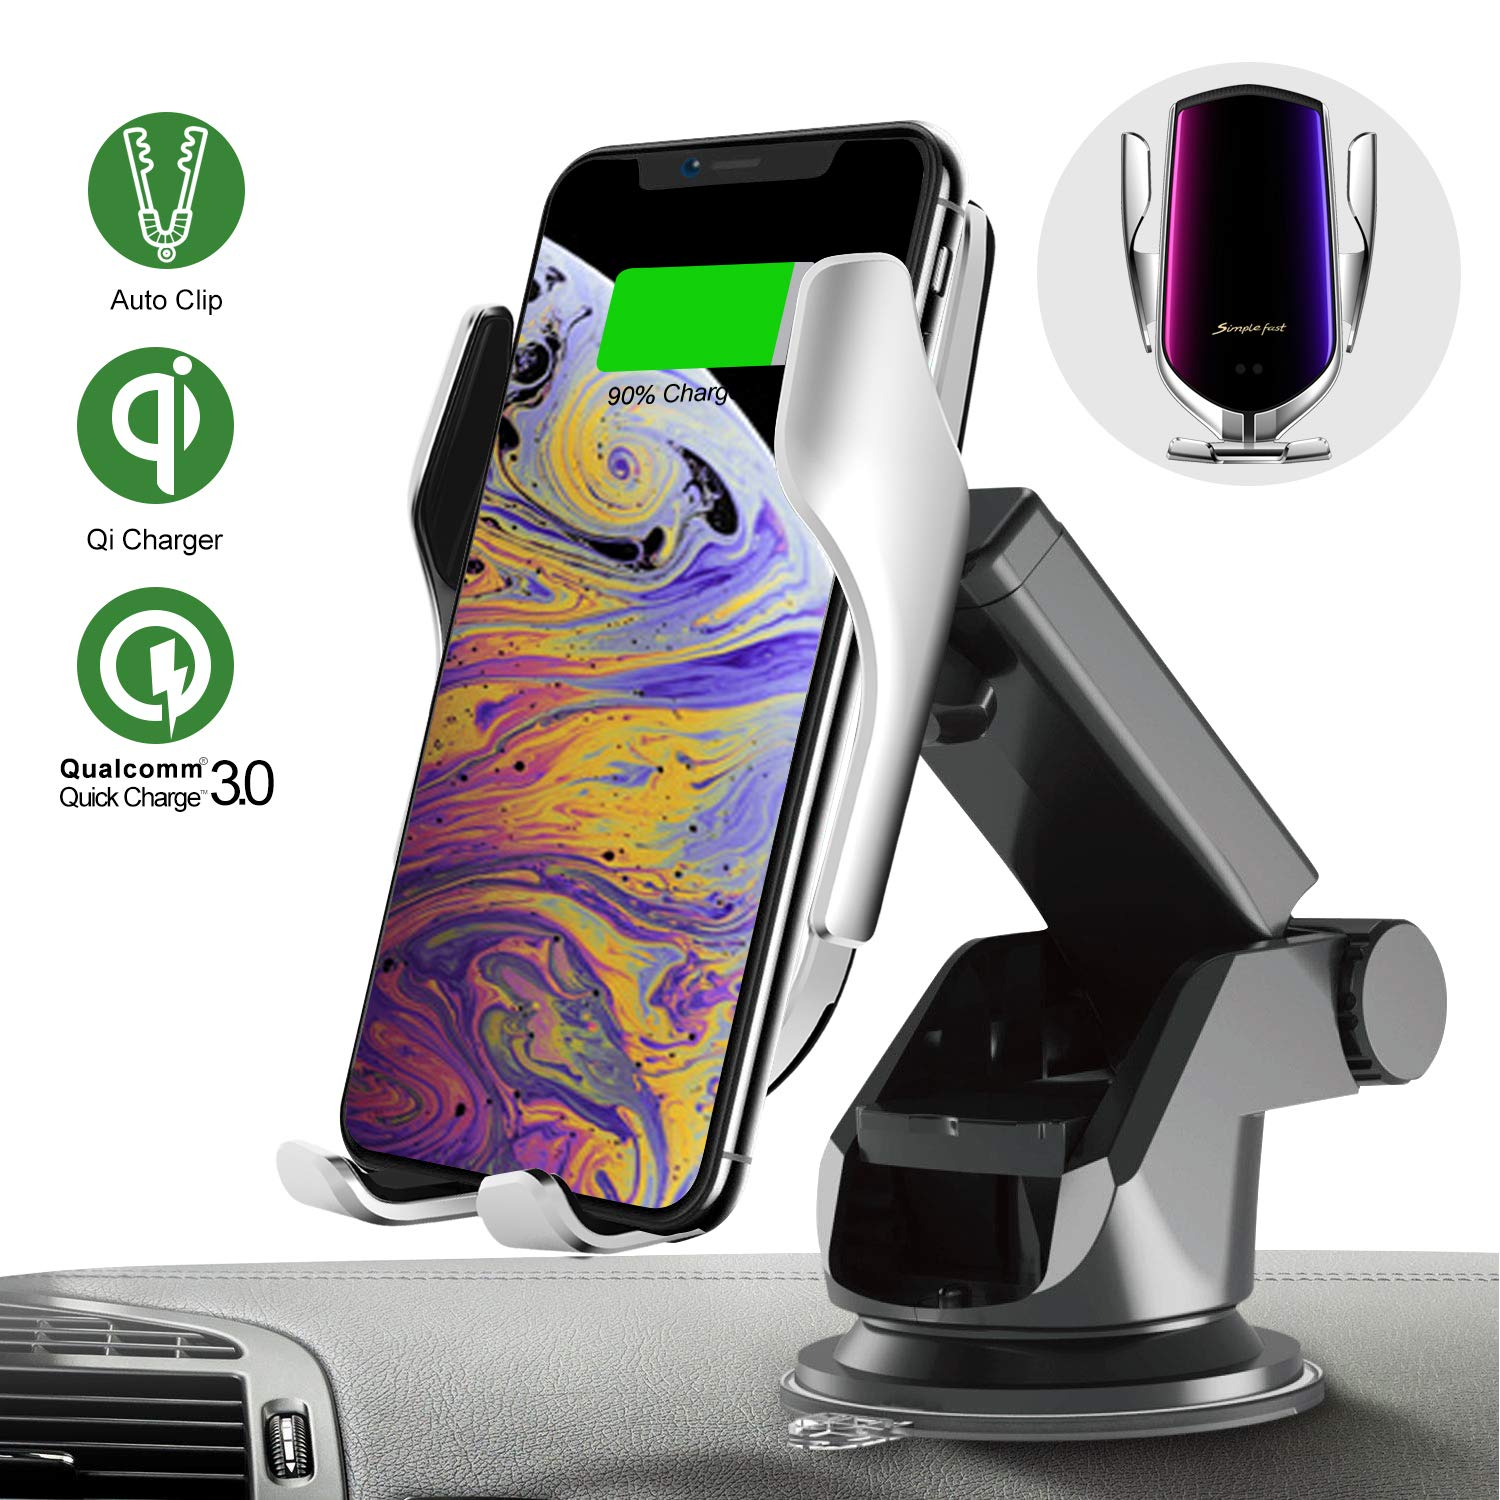 Qi Wireless Car Charger Mount, 10W 3.0 Car Charger Air Vent Phone Holder Fast Charging Automatic Clamping Smart Sensor Windshield Dashboard 360°Rotation Compatible with i Phone Xs MAX/XS/XR Samsung S9 by YunFan